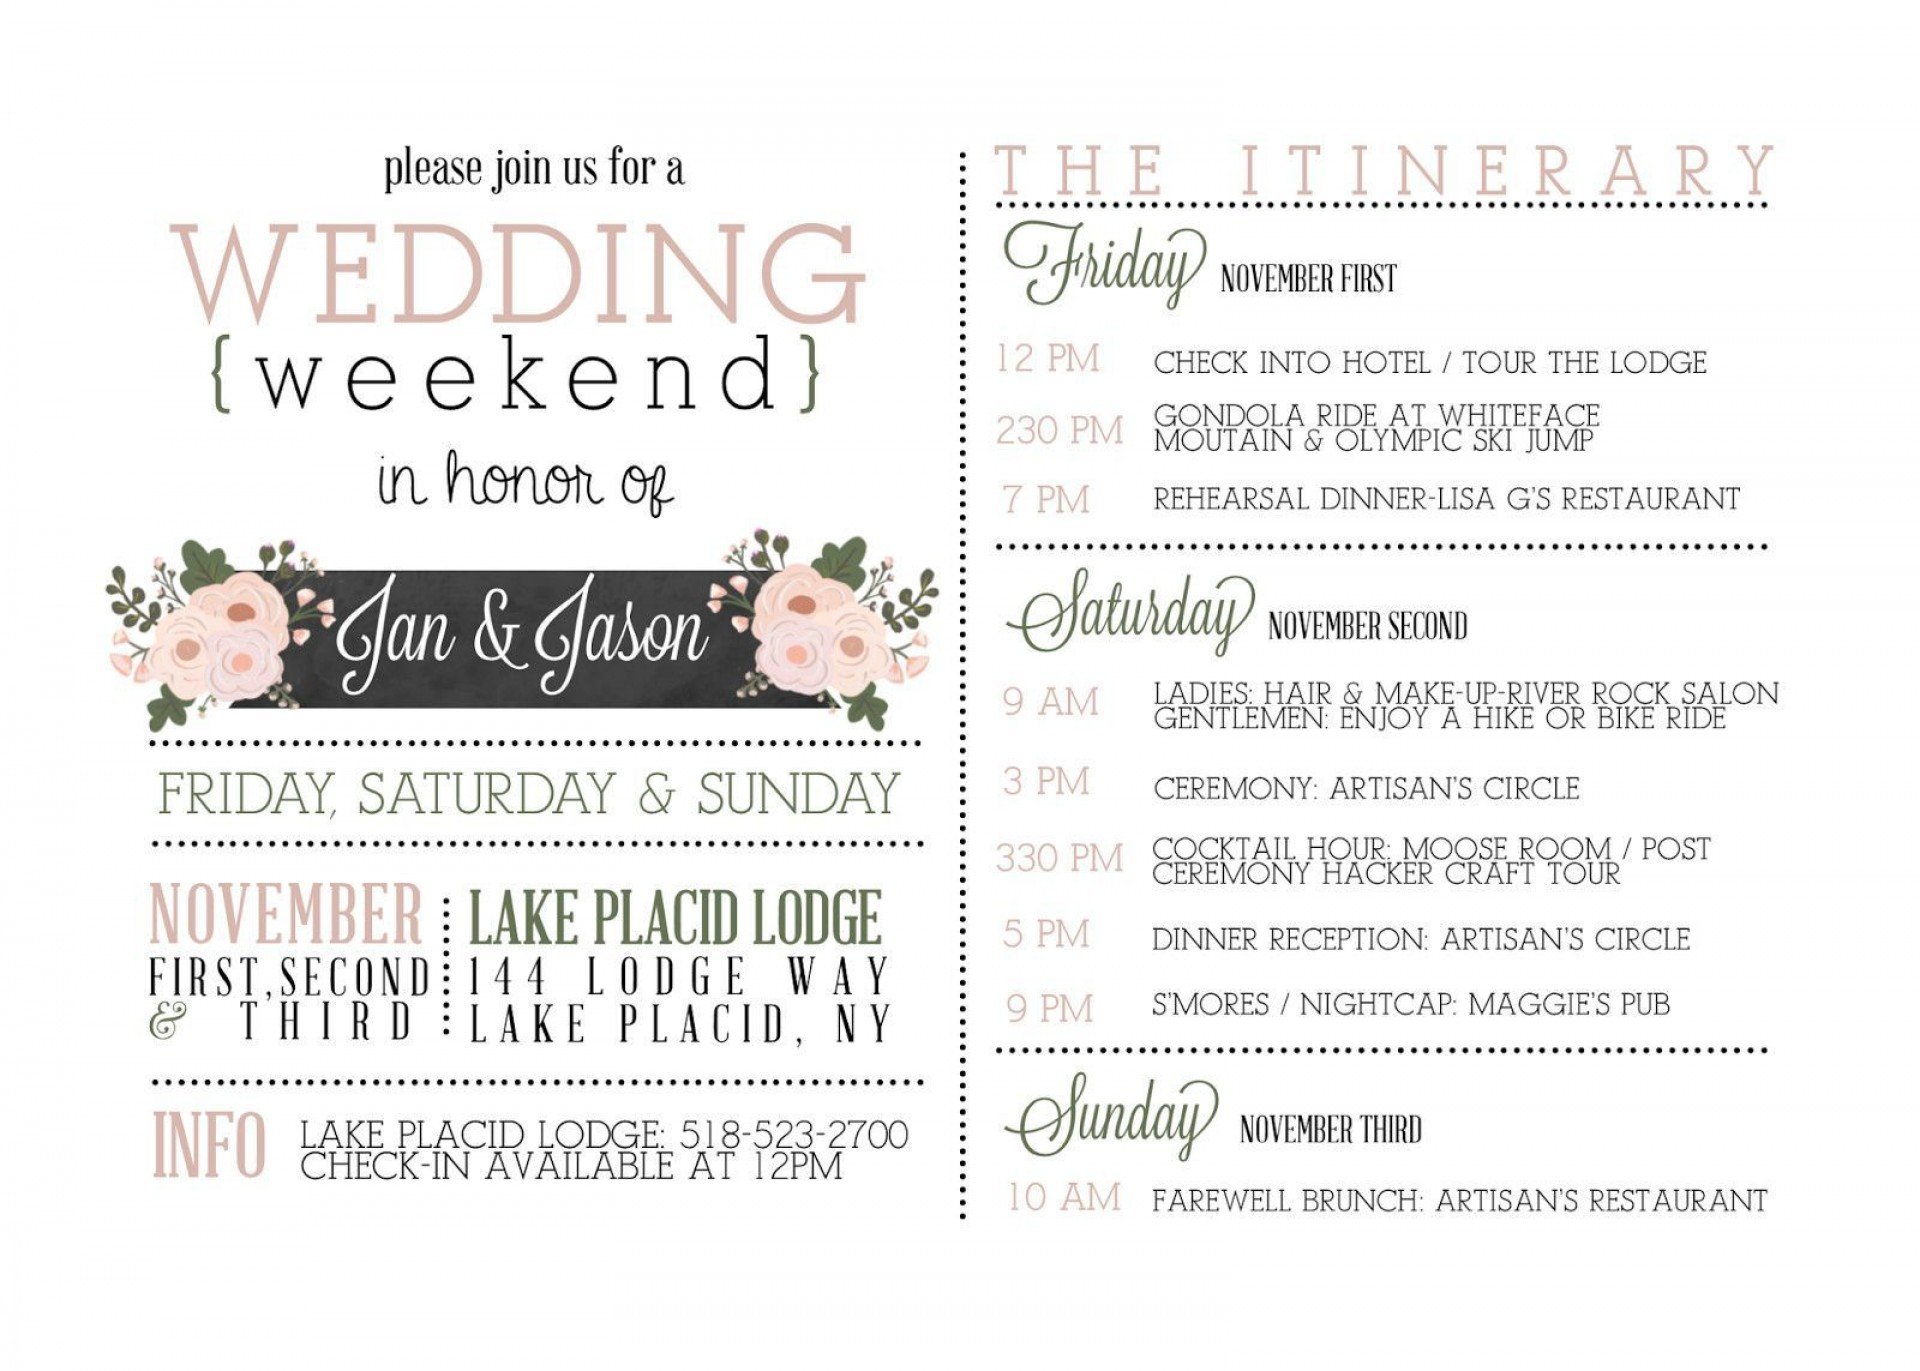 003 Unusual Wedding Day Itinerary Template Idea  Sample Excel Word1920